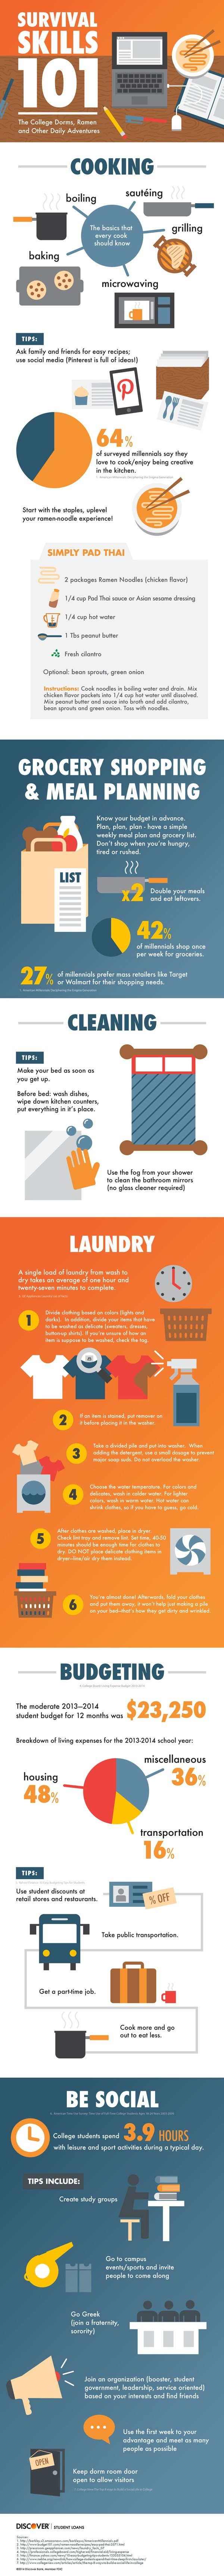 Students College Survival skills #infographic